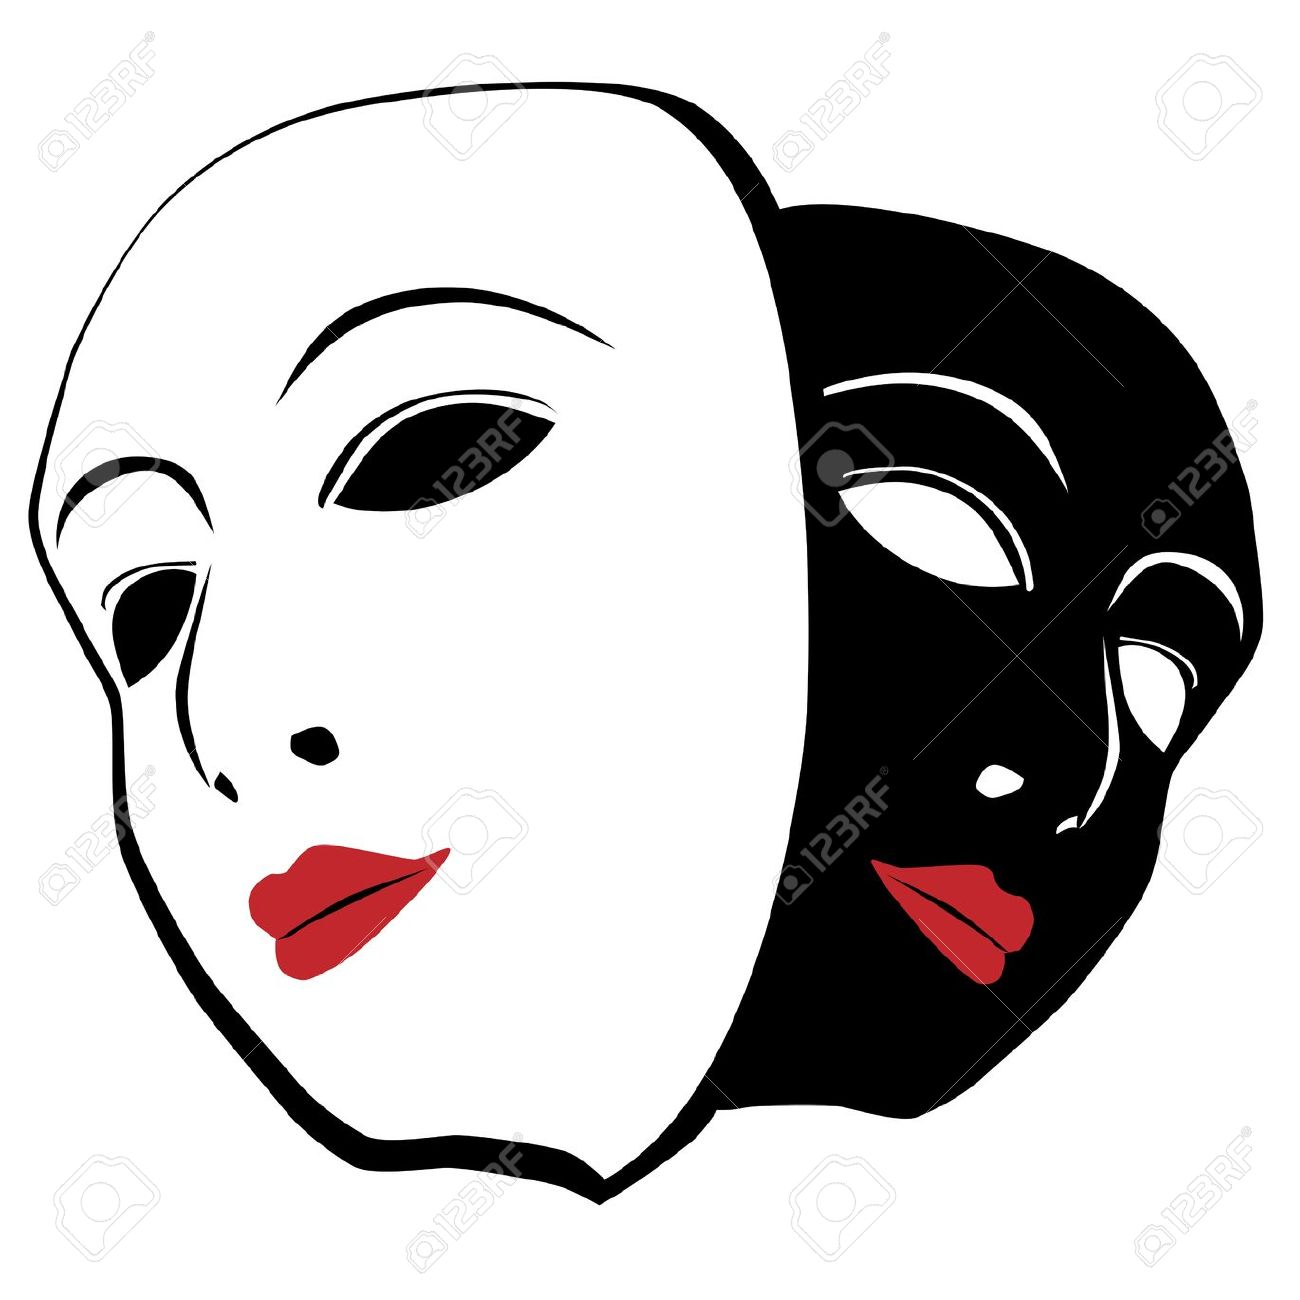 Theatre free on dumielauxepices. Actor clipart dramatization